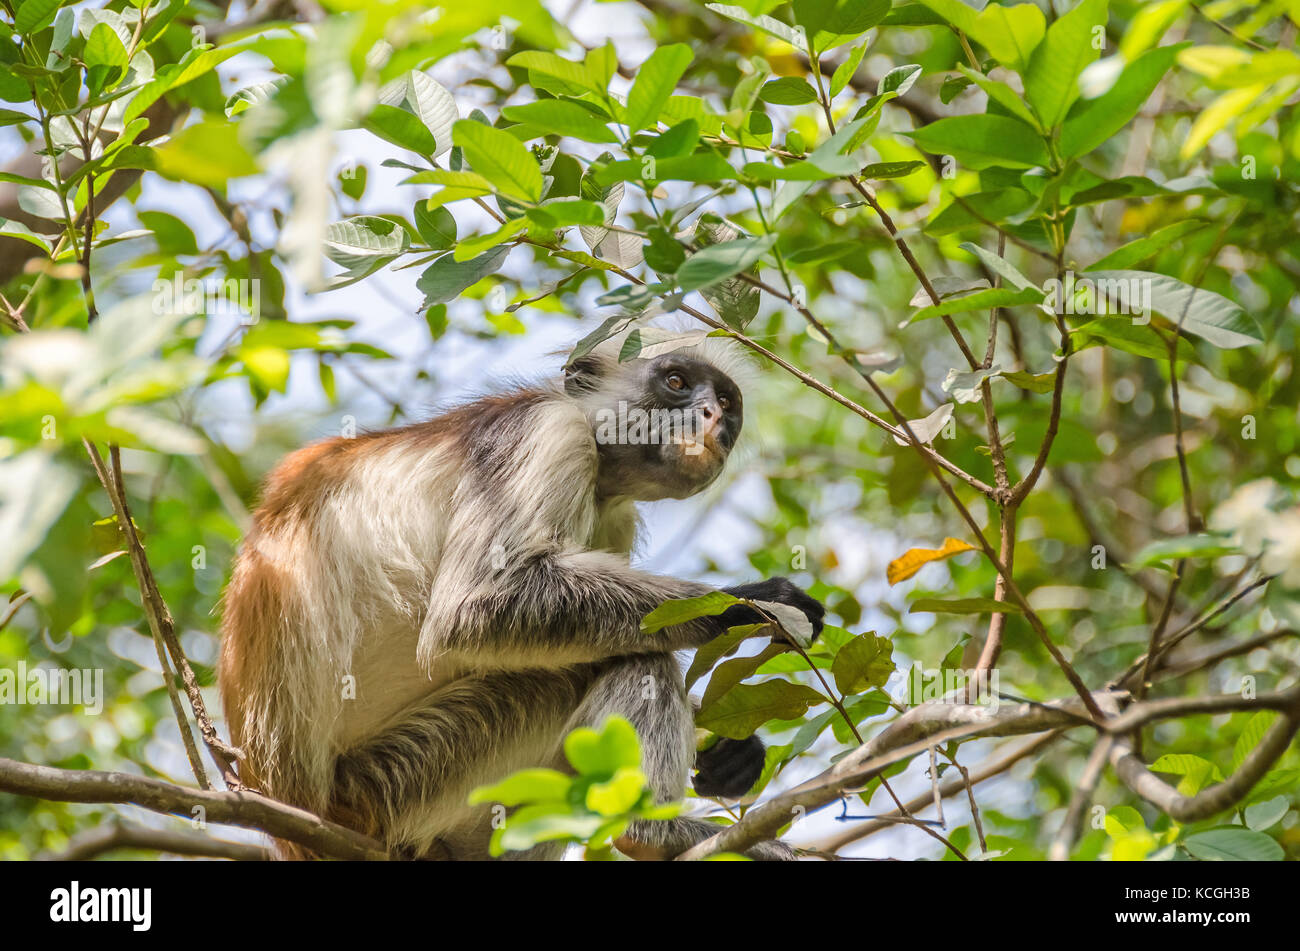 Zanzibar Red colobuses or Kirk's red colobus, Old World monkeys, the most threatened taxonomic group of primates - Stock Image